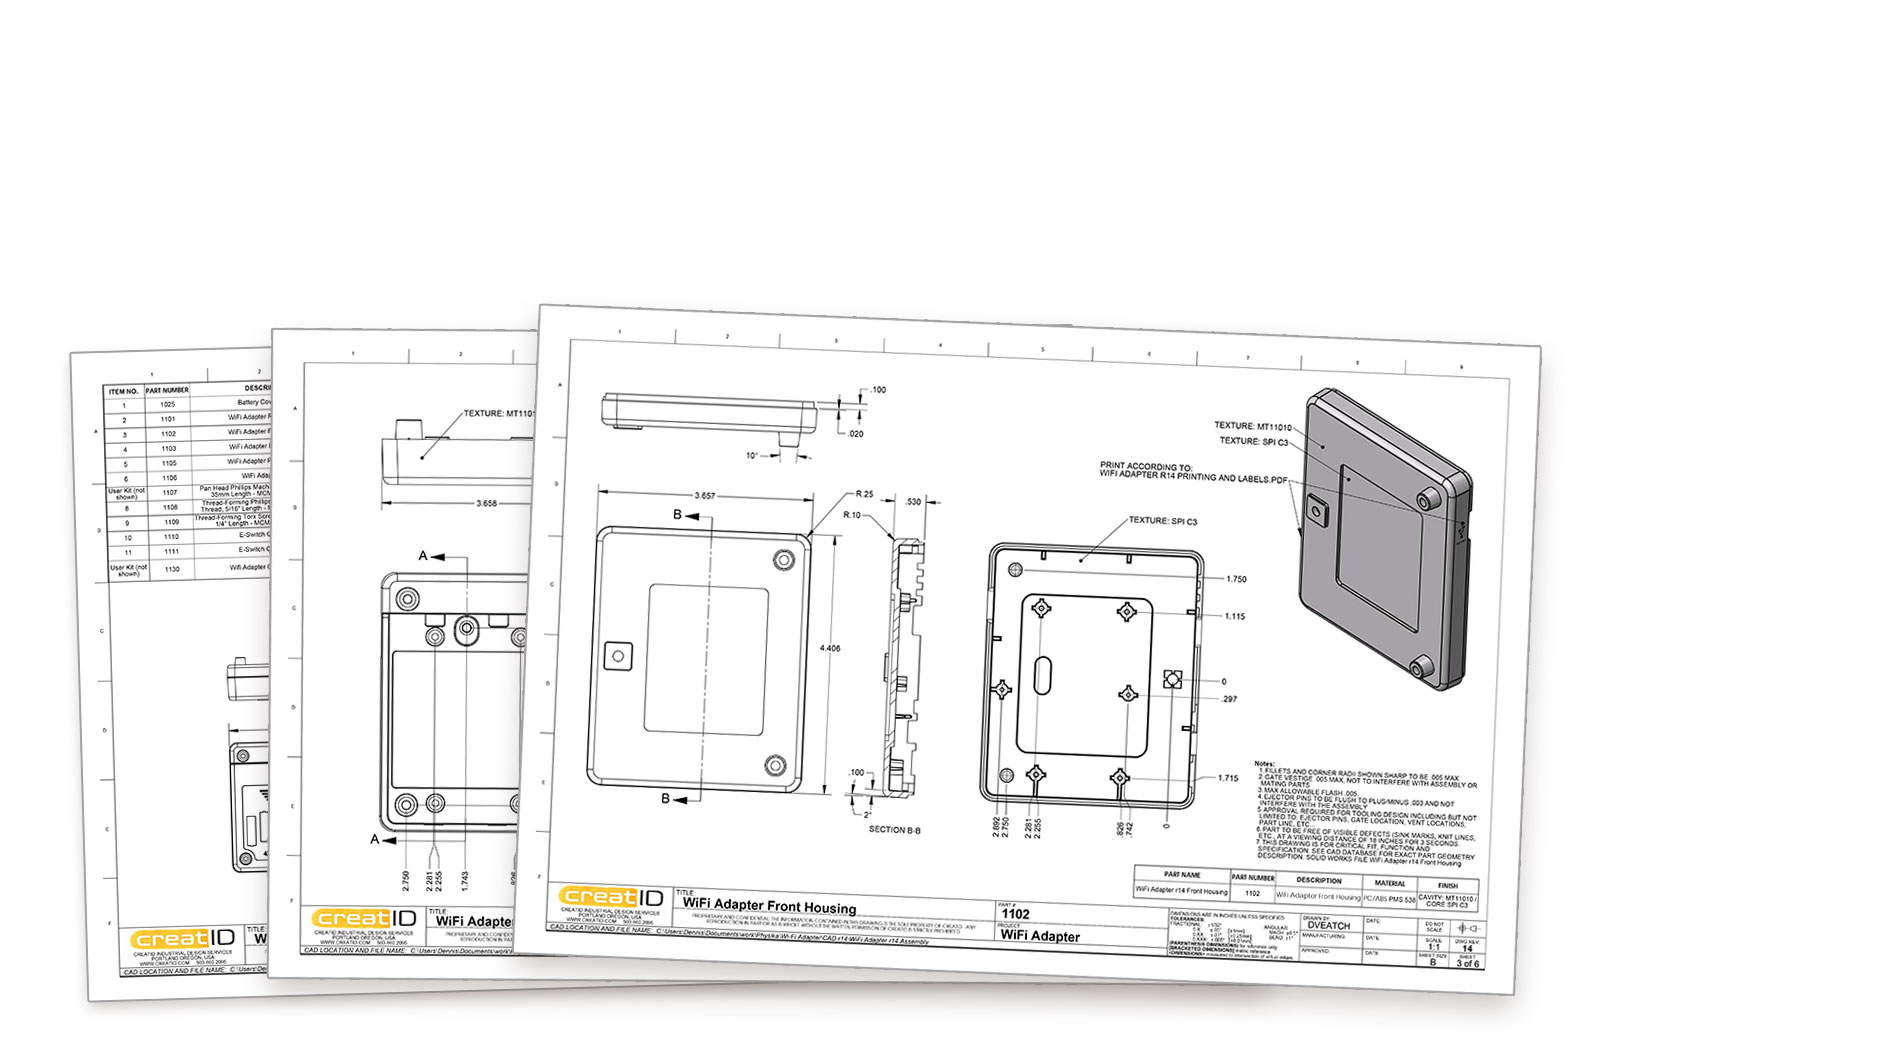 wifi adapter manufacturing documentation